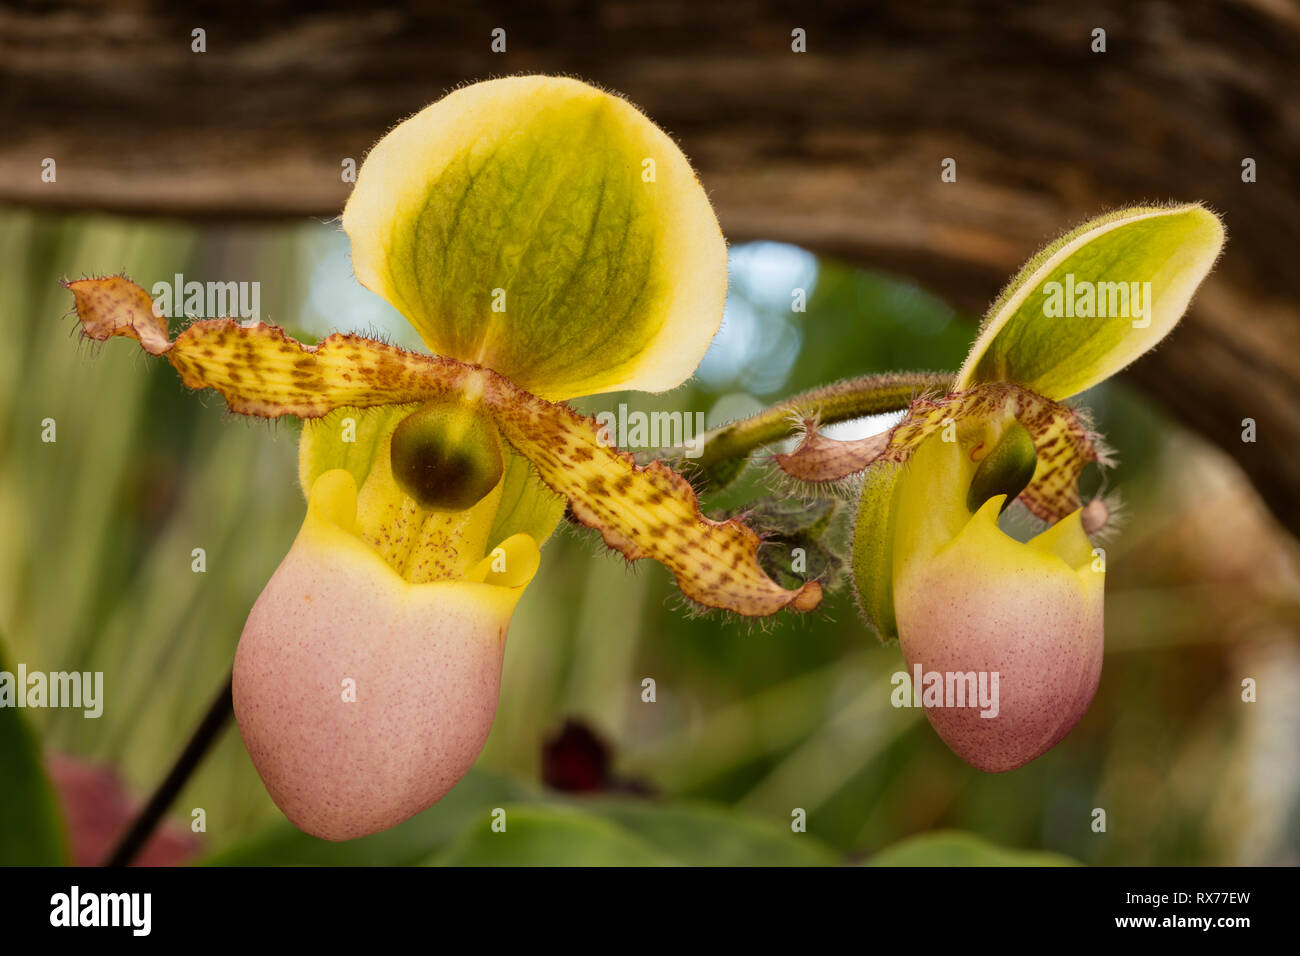 botany, Slipper orchid (Paphiopedilum), Additional-Rights-Clearance-Info-Not-Available - Stock Image